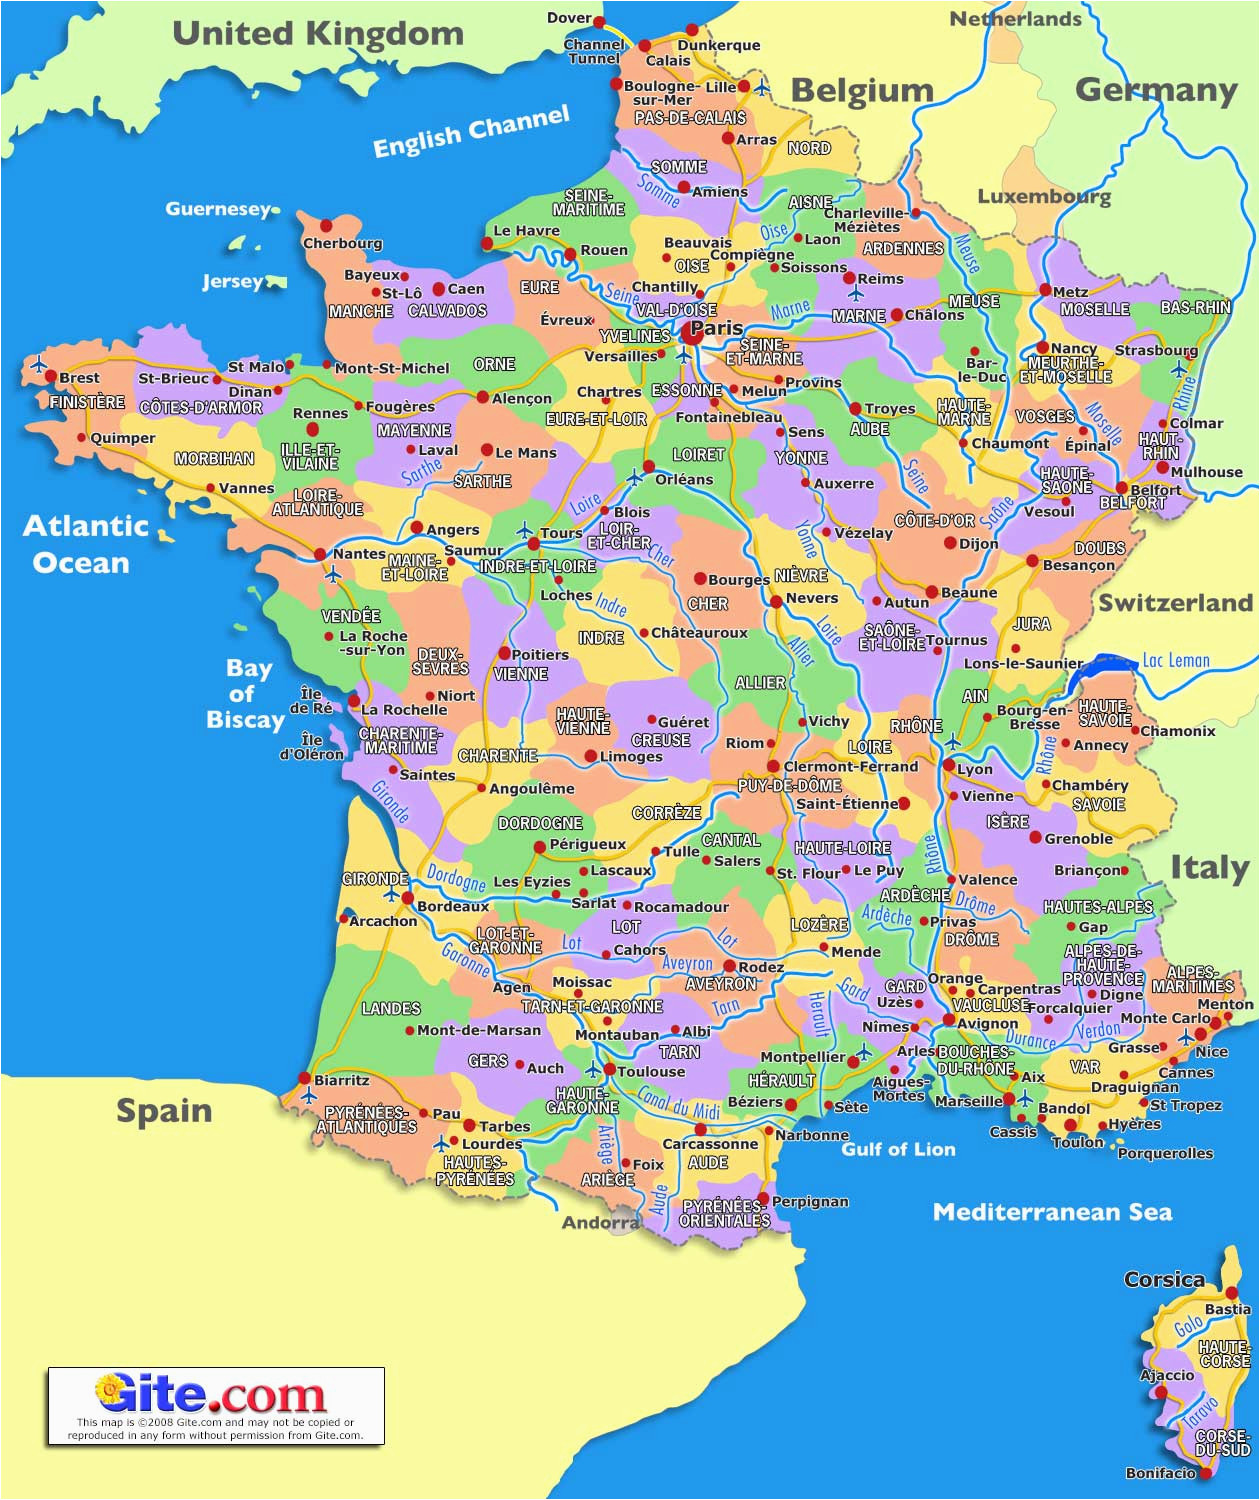 Map south France Coast Guide to Places to Go In France south Of France and Provence